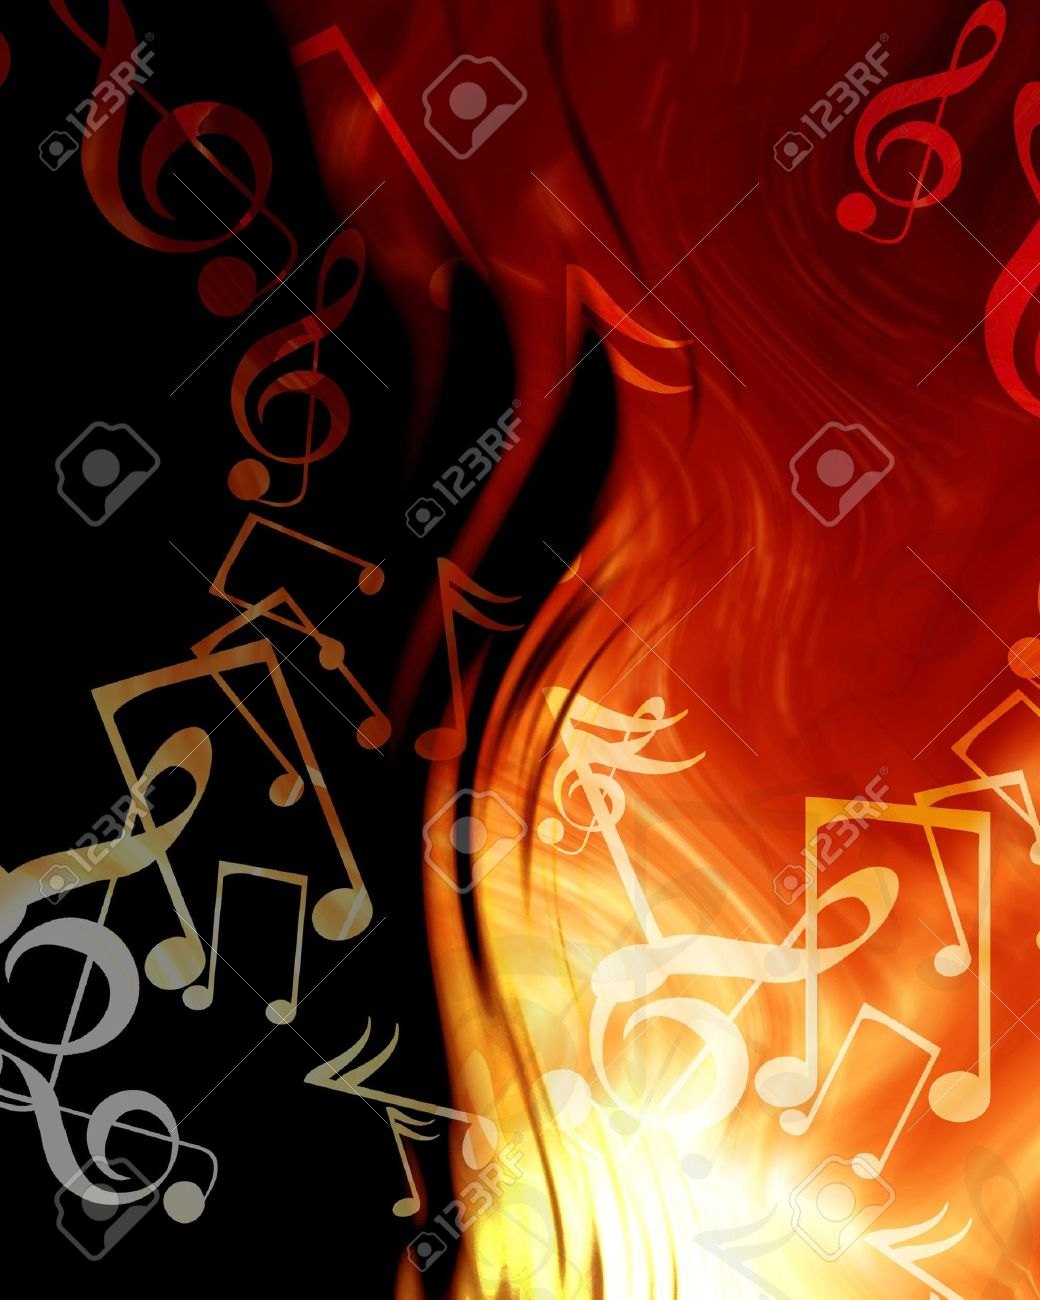 Fantastic Wallpaper Music Fire - 3524851-abstract-musical-notes-on-a-fire-like-background  You Should Have_94241.jpg